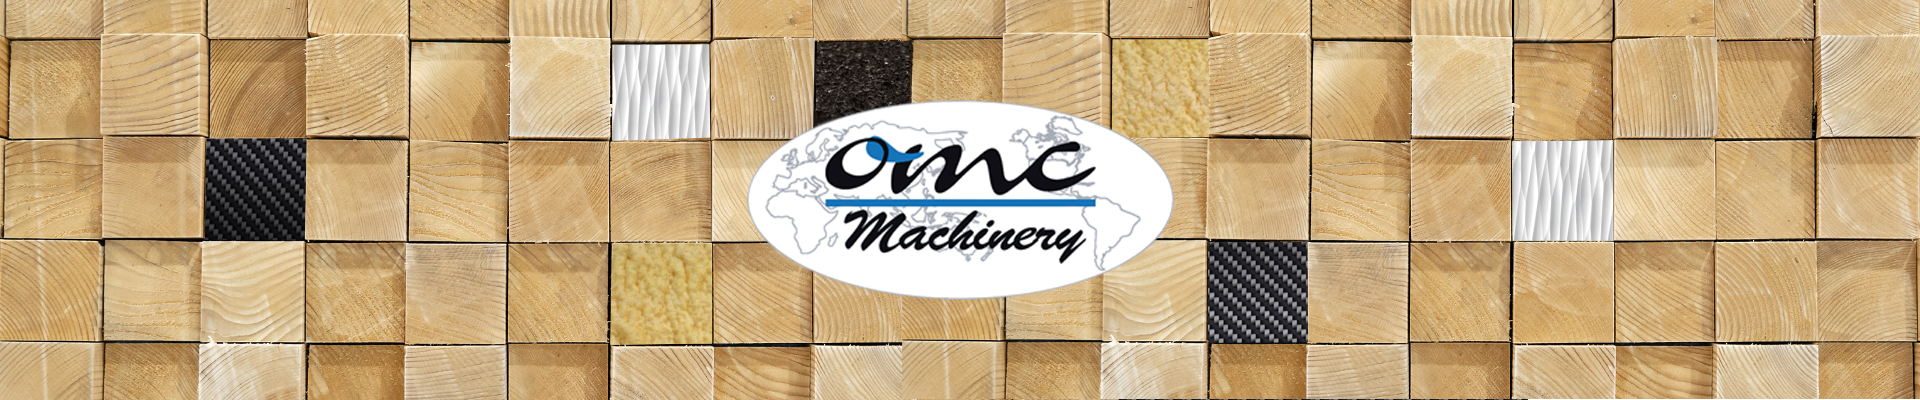 All About press Wood, Polyurethane, Rubber, Solid Surface, Innovative Materials